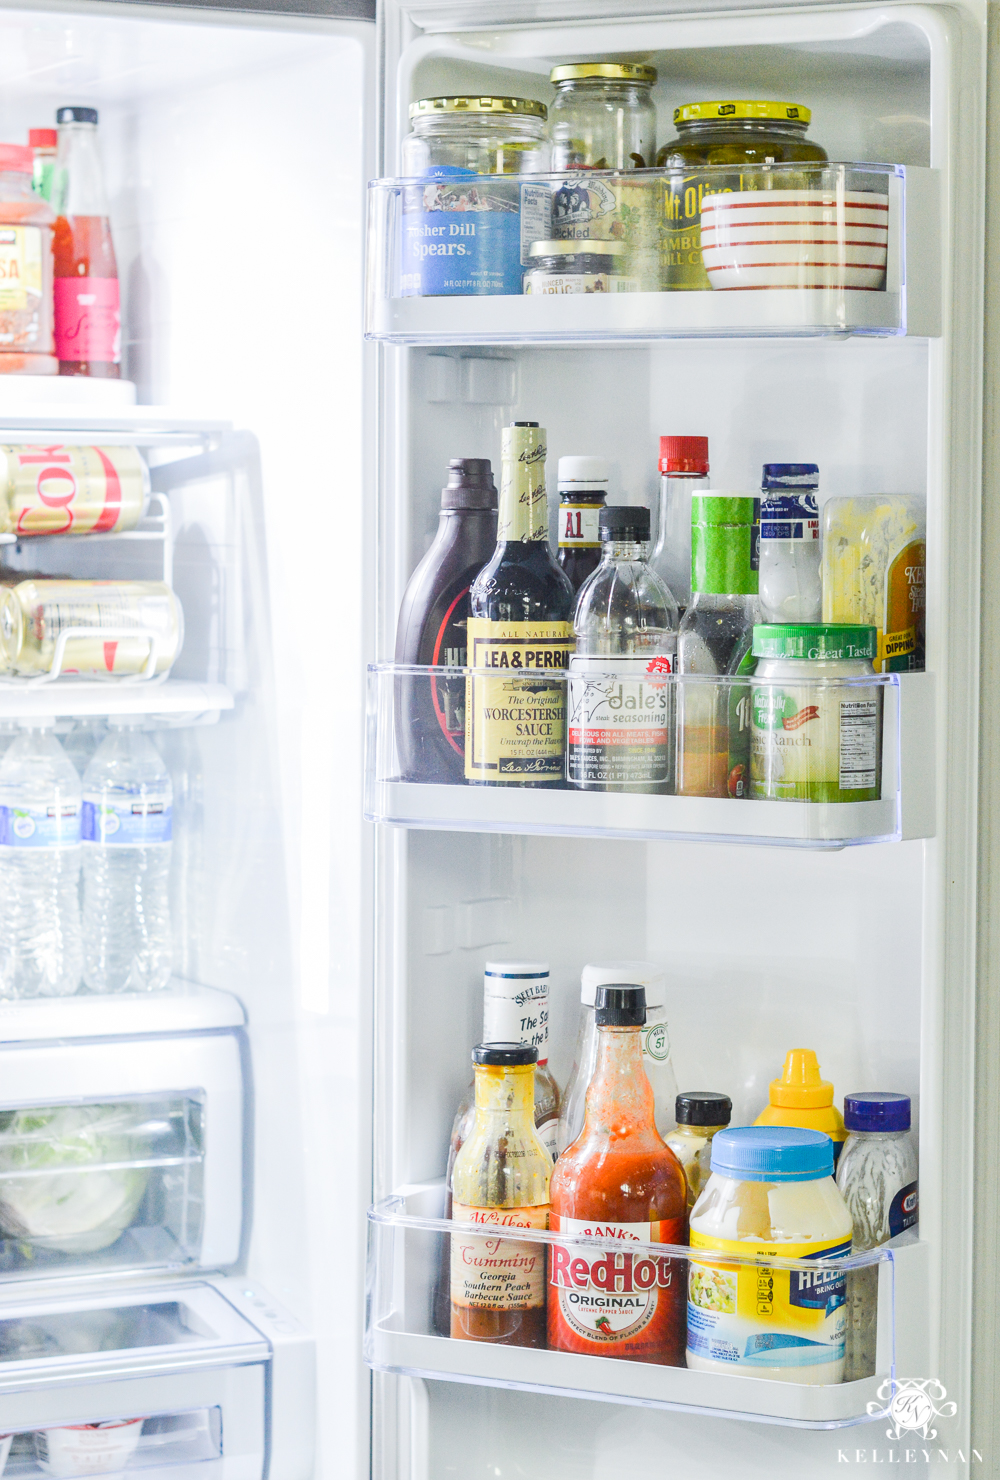 Refrigerator Organization and Best Ways to Organize the Fridge- condiments and sauces in door